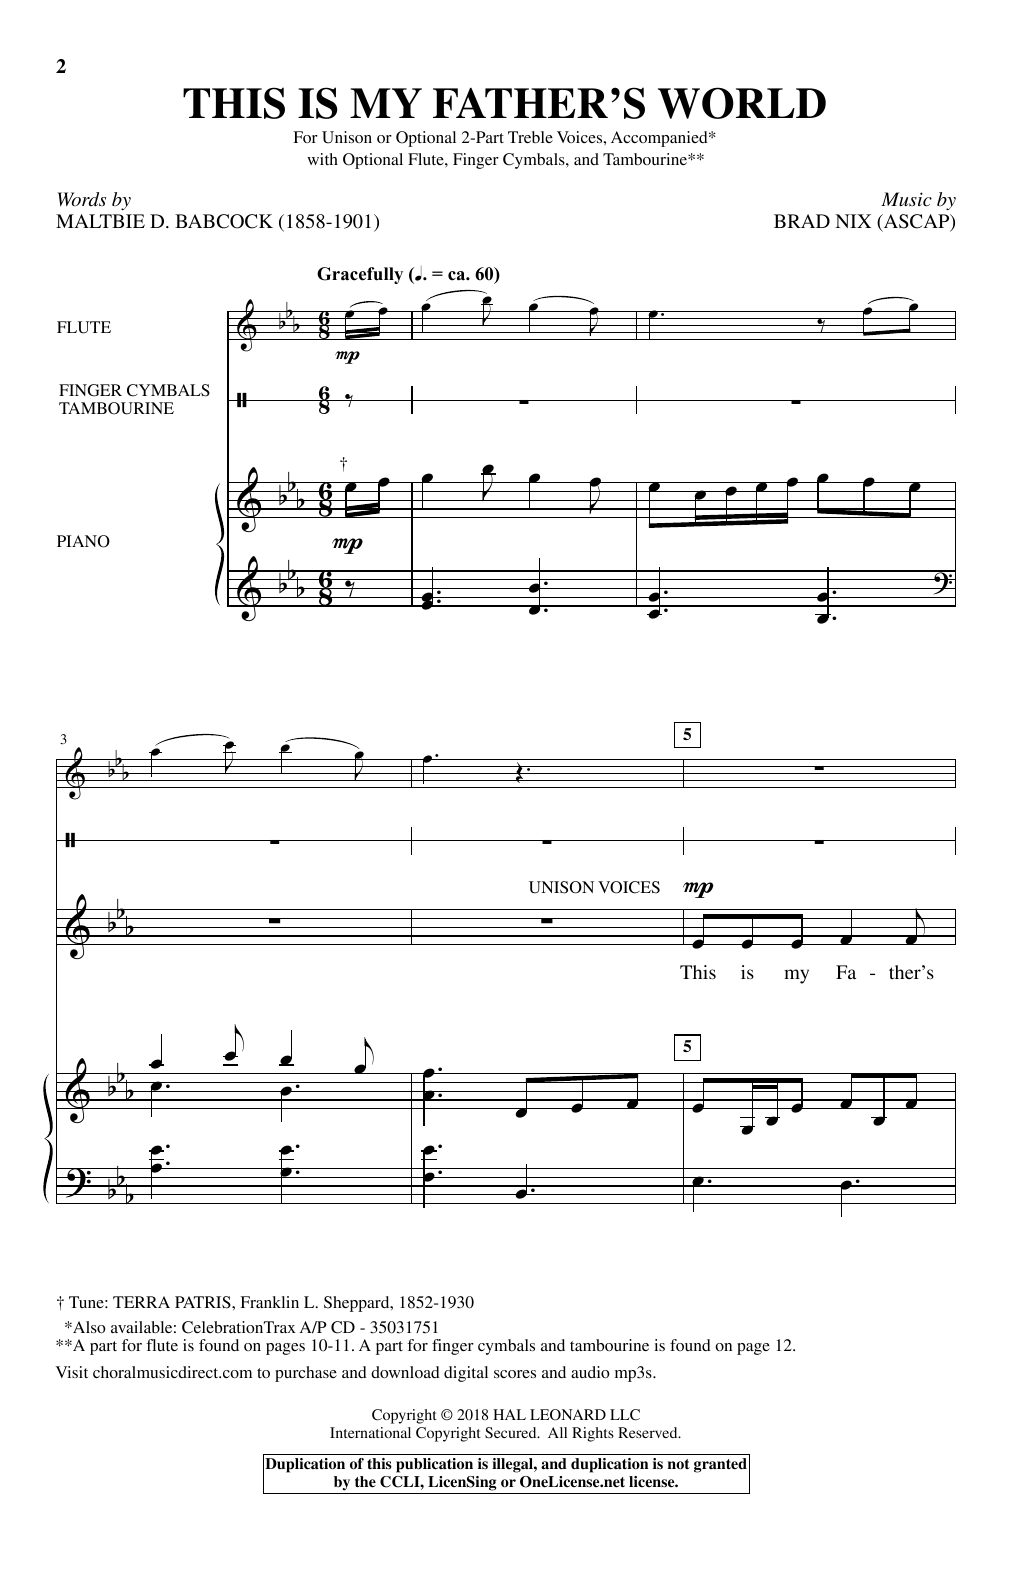 Brad Nix This Is My Father's World sheet music notes and chords. Download Printable PDF.